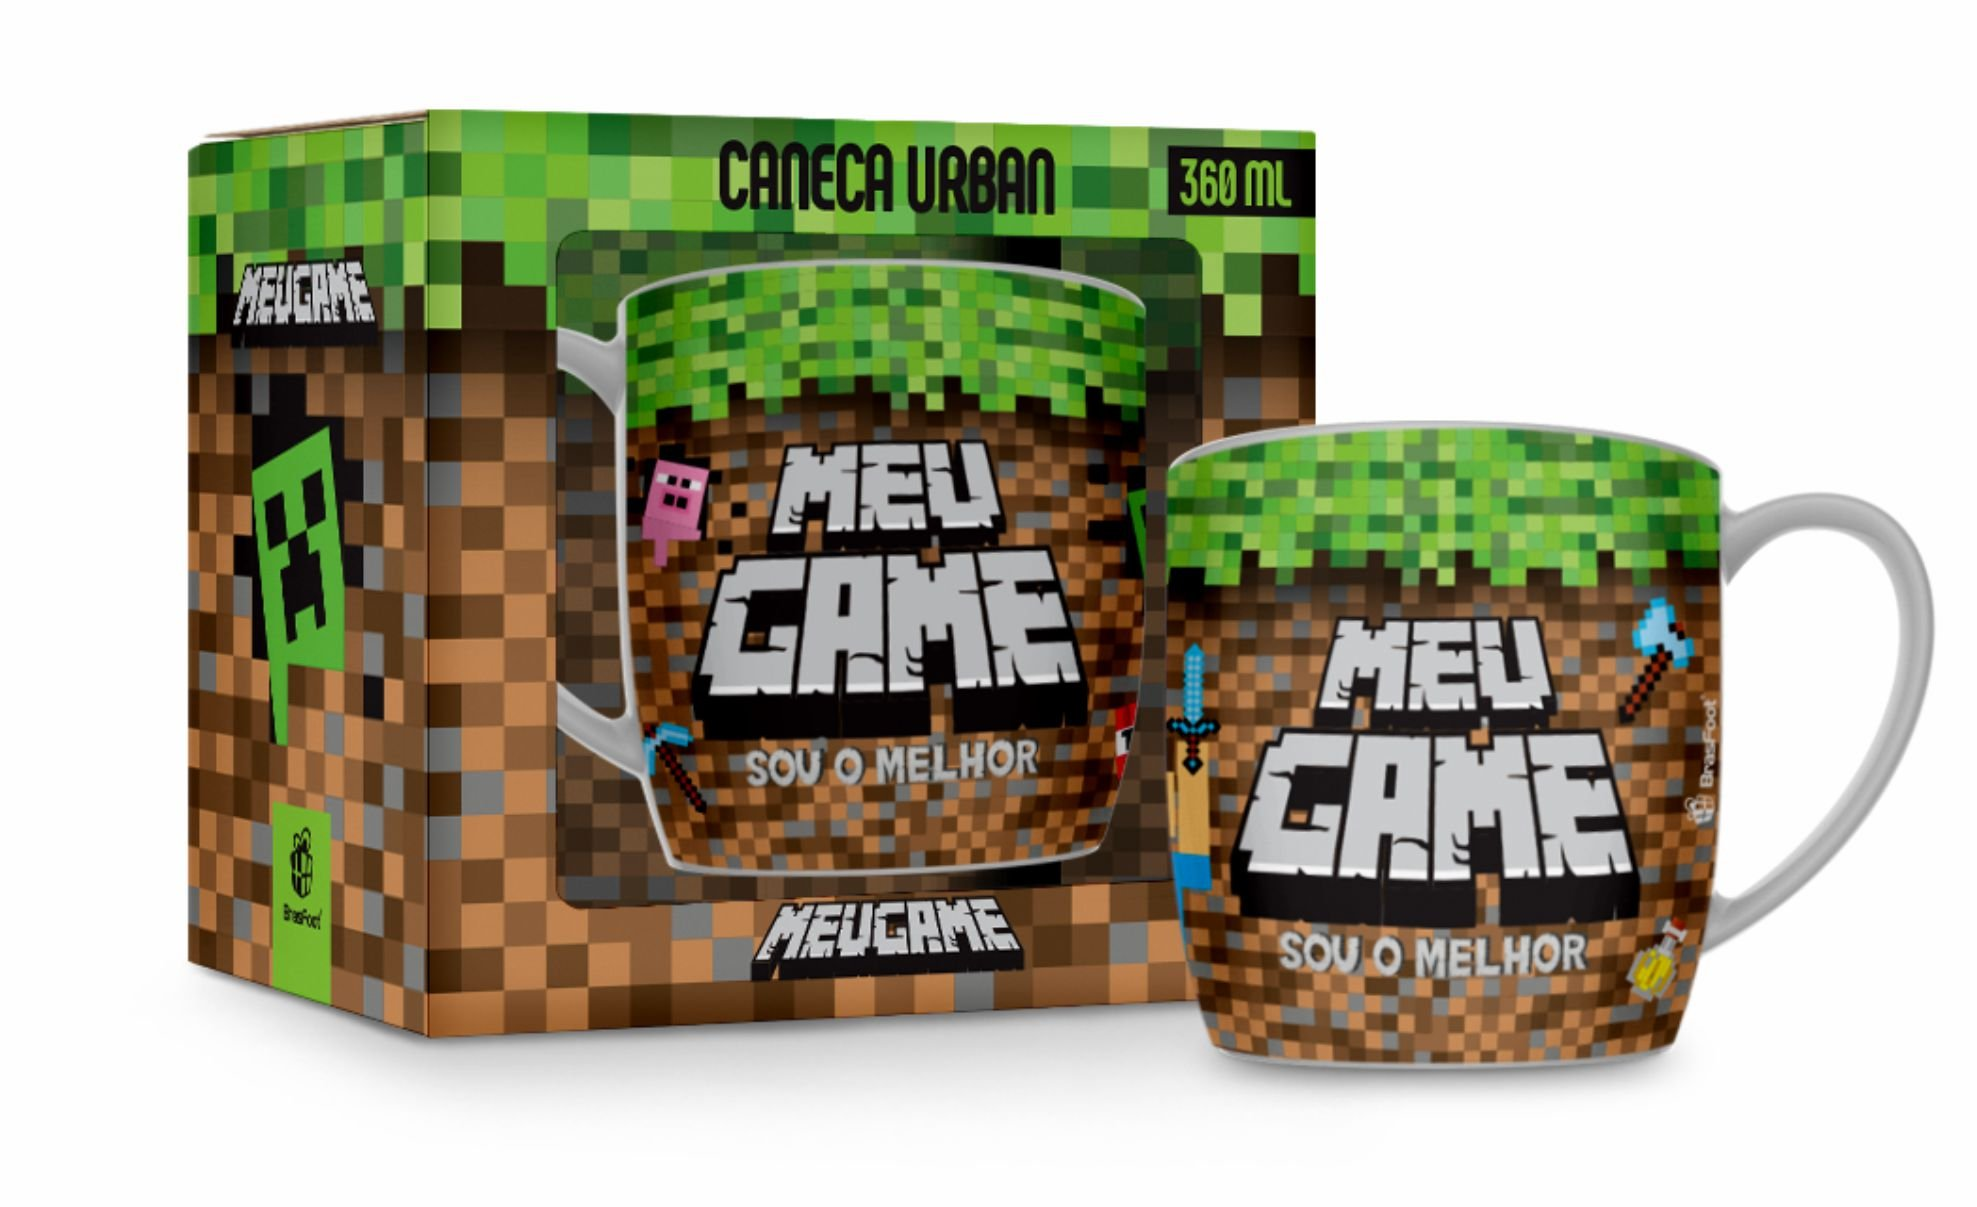 CANECA PORCELANA URBAN 360ML - MEU GAME MINE